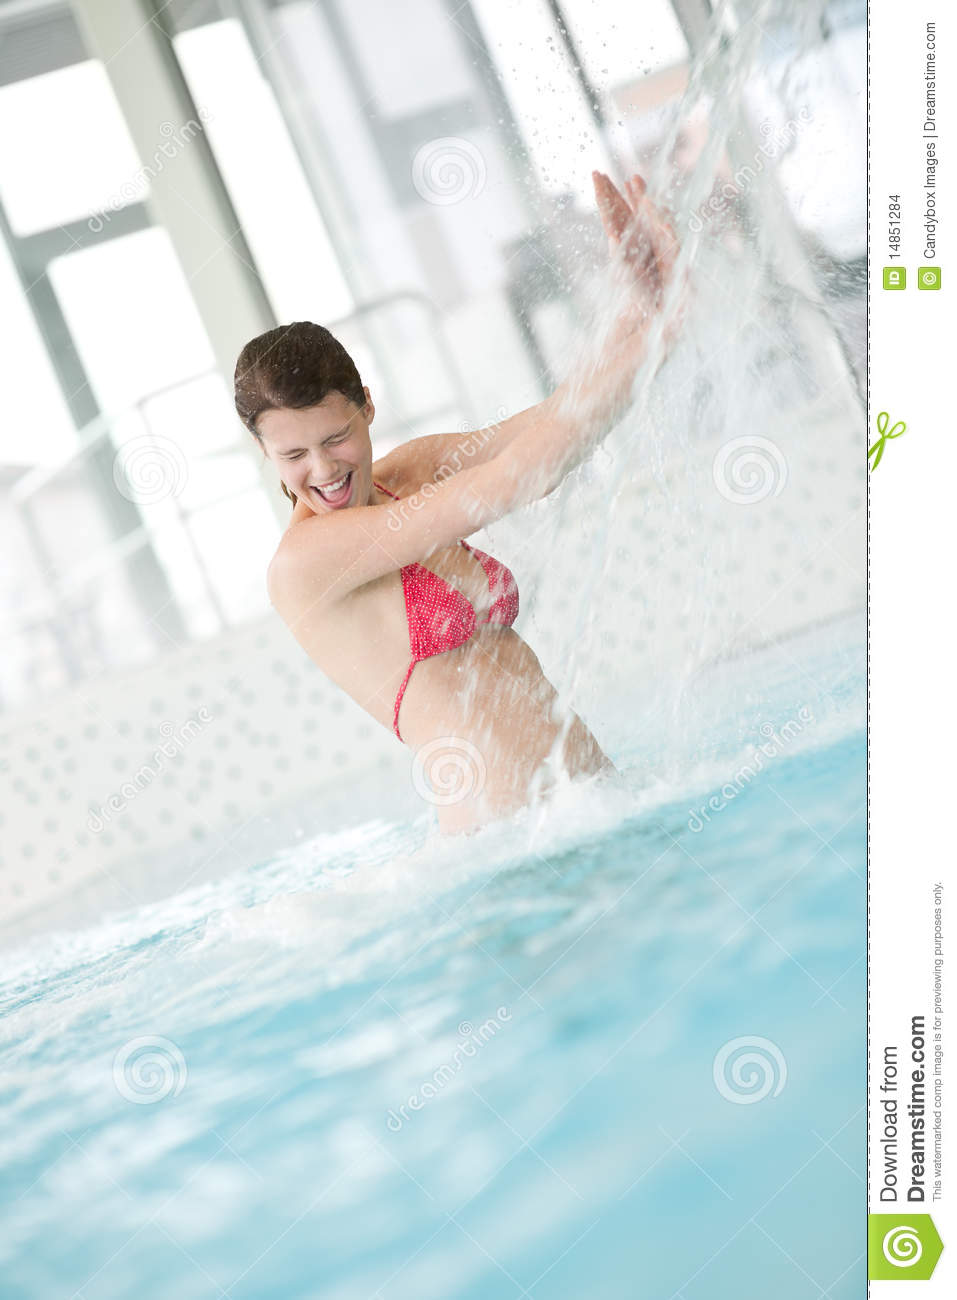 Swimming pool - happy woman under water stream